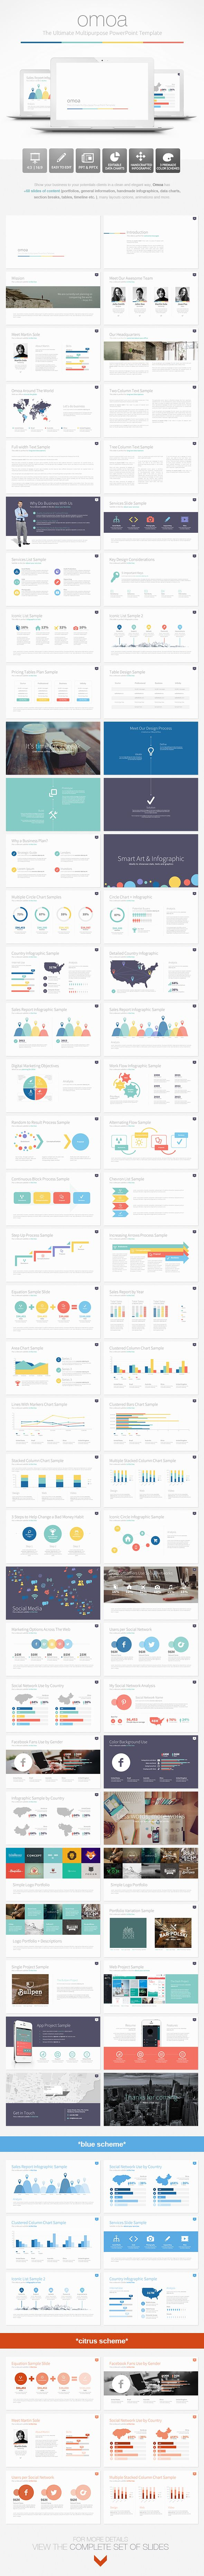 Omoa - Multipurpose PowerPoint Template by Eduardo Mejia, via Behance